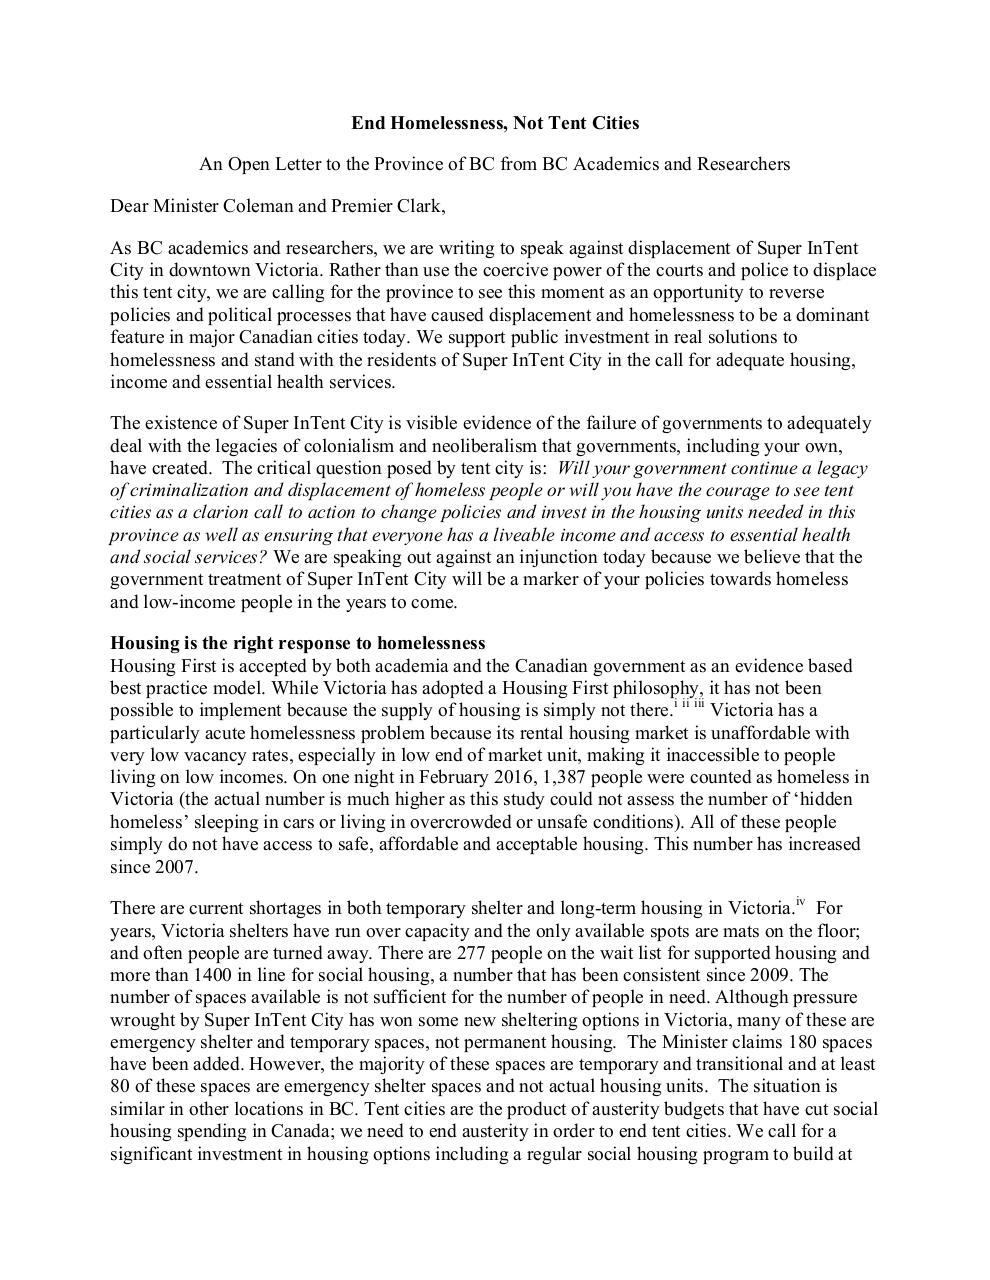 Press Release - End Homelessness, Not Tent Cities.pdf - page 2/10